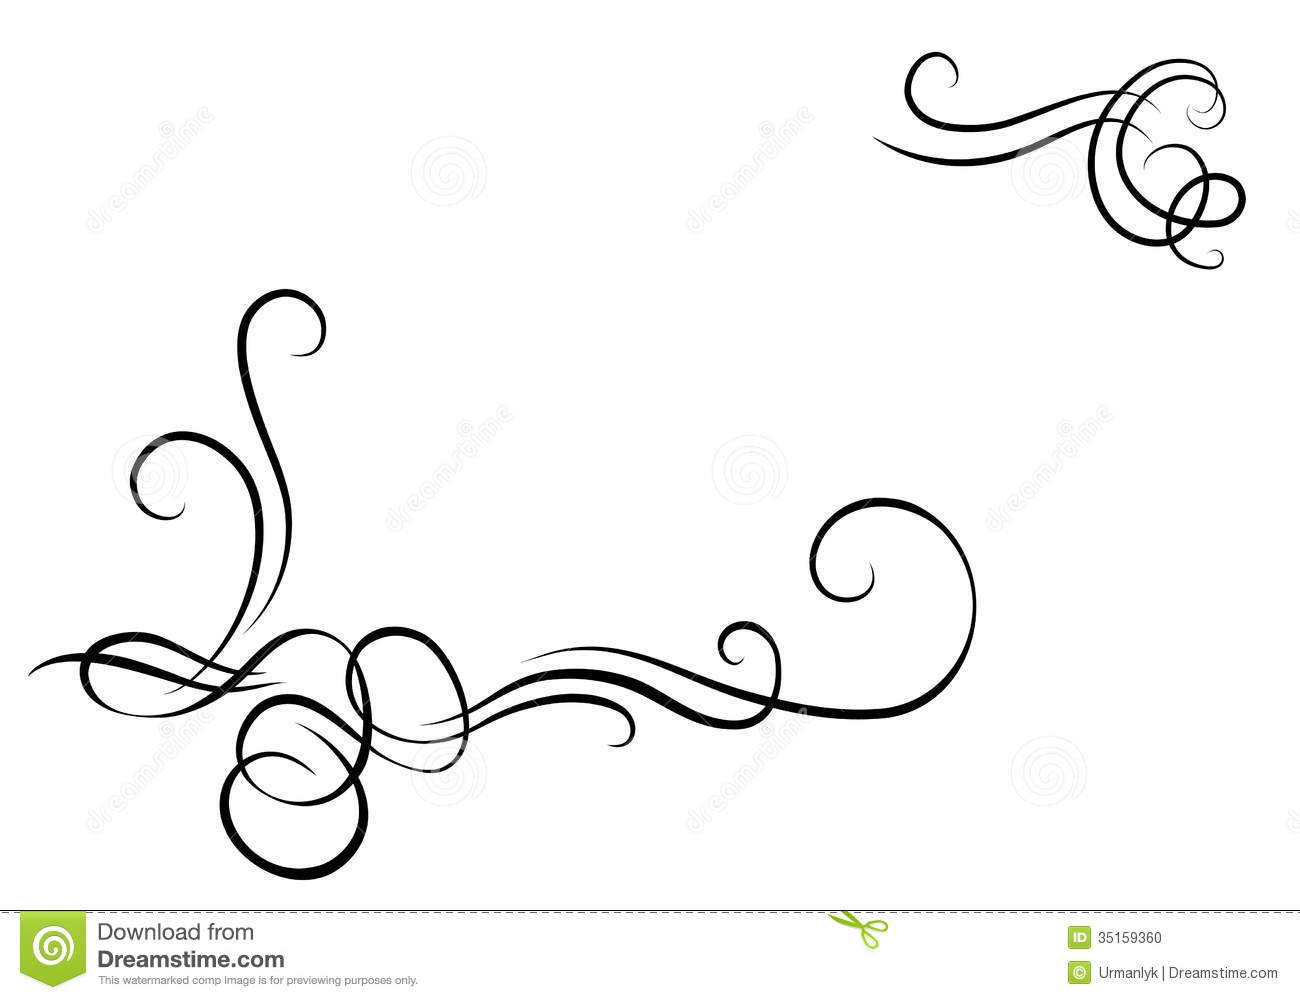 Http Www Dreamstime Com Stock Photo Decorative Monogram Corners Picture Image35159360